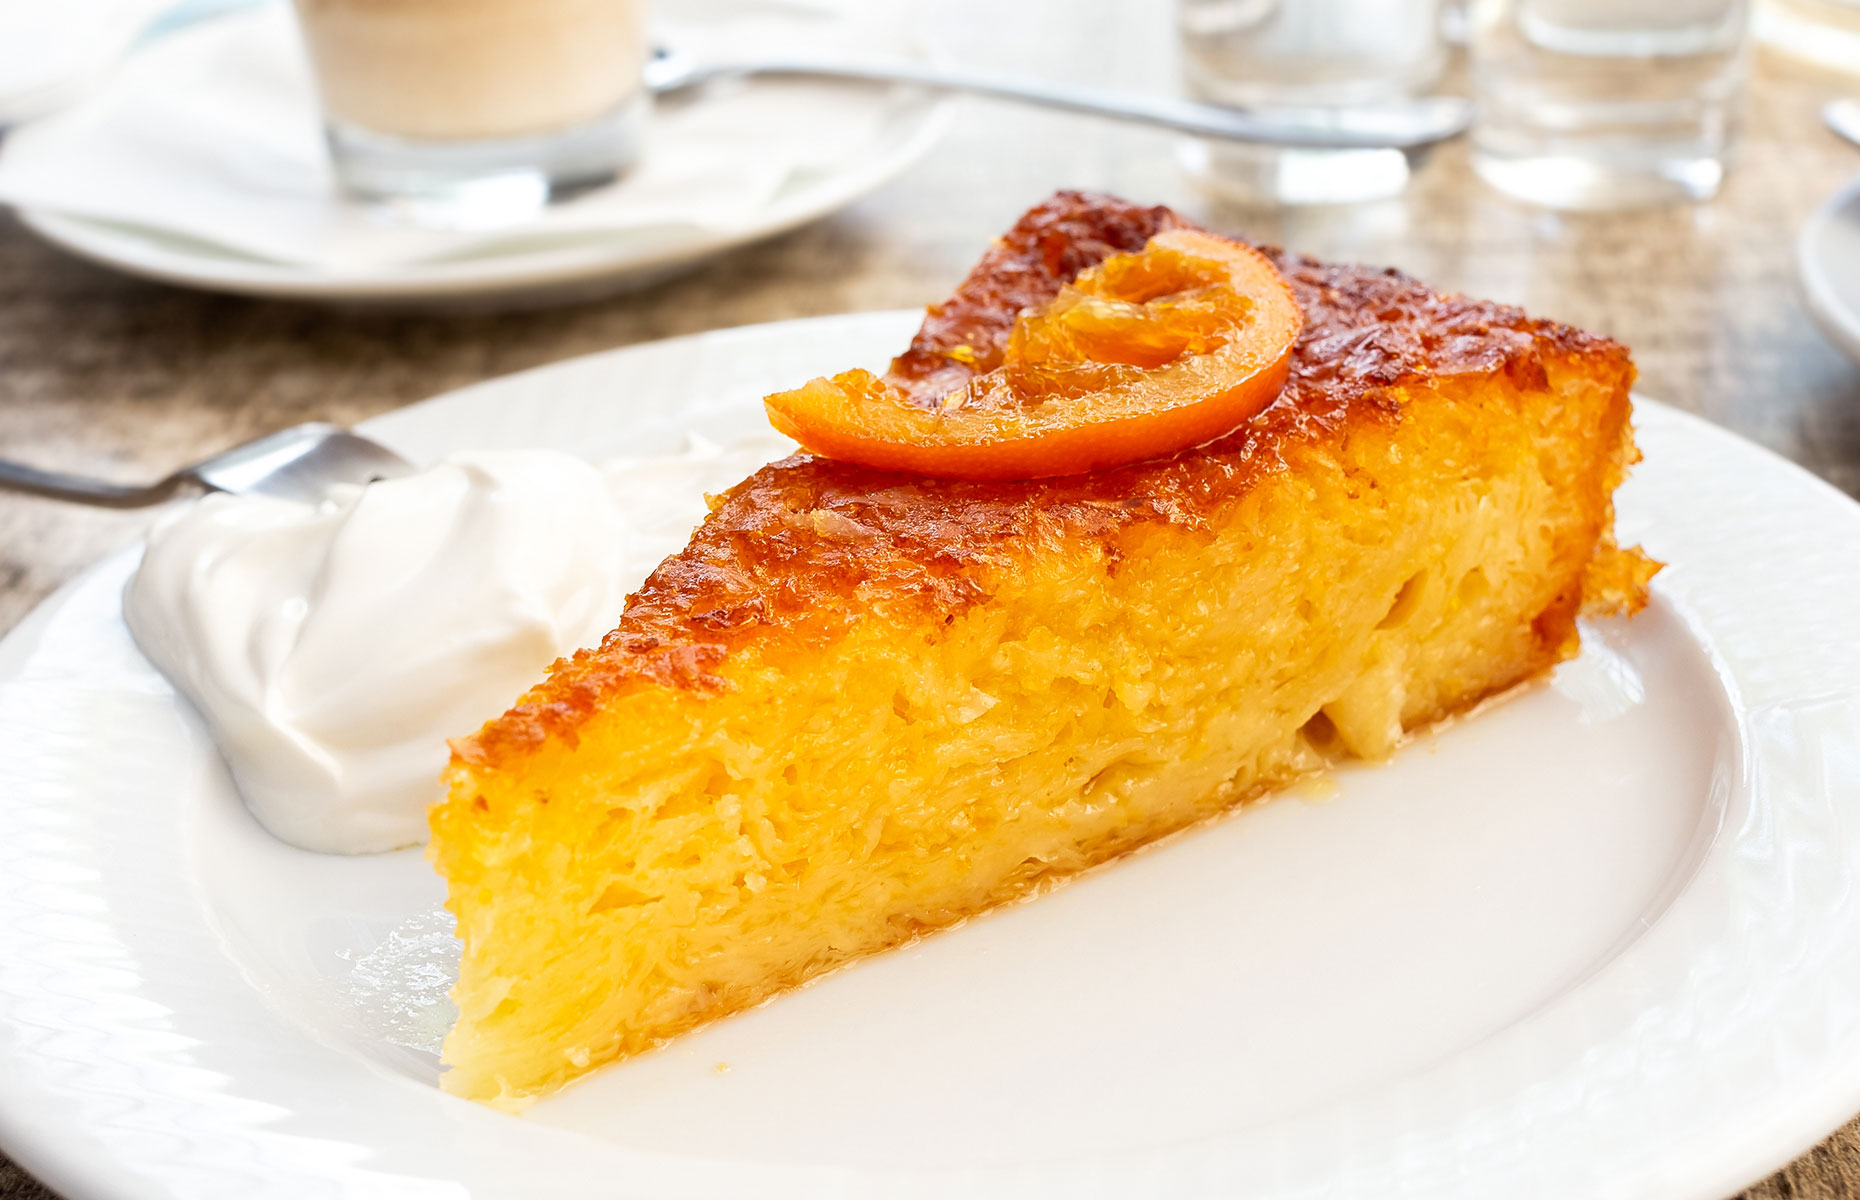 Greek orange cake in the Peloponnese (Image: Moving Moment/Shutterstock)